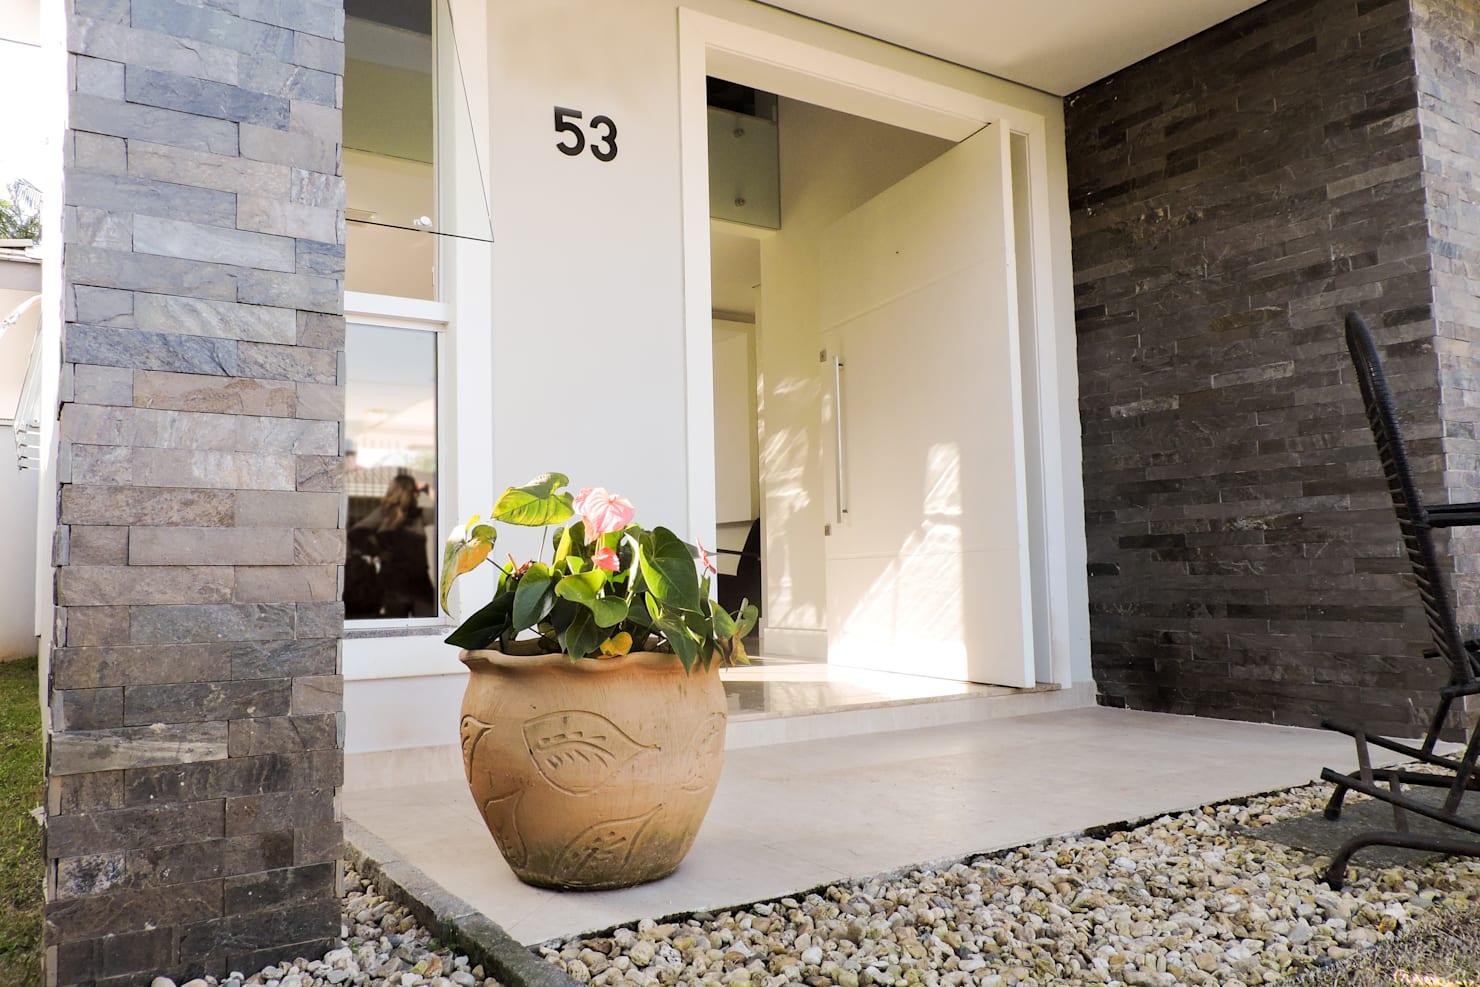 15 simple ideas that will make your entrance look beautiful